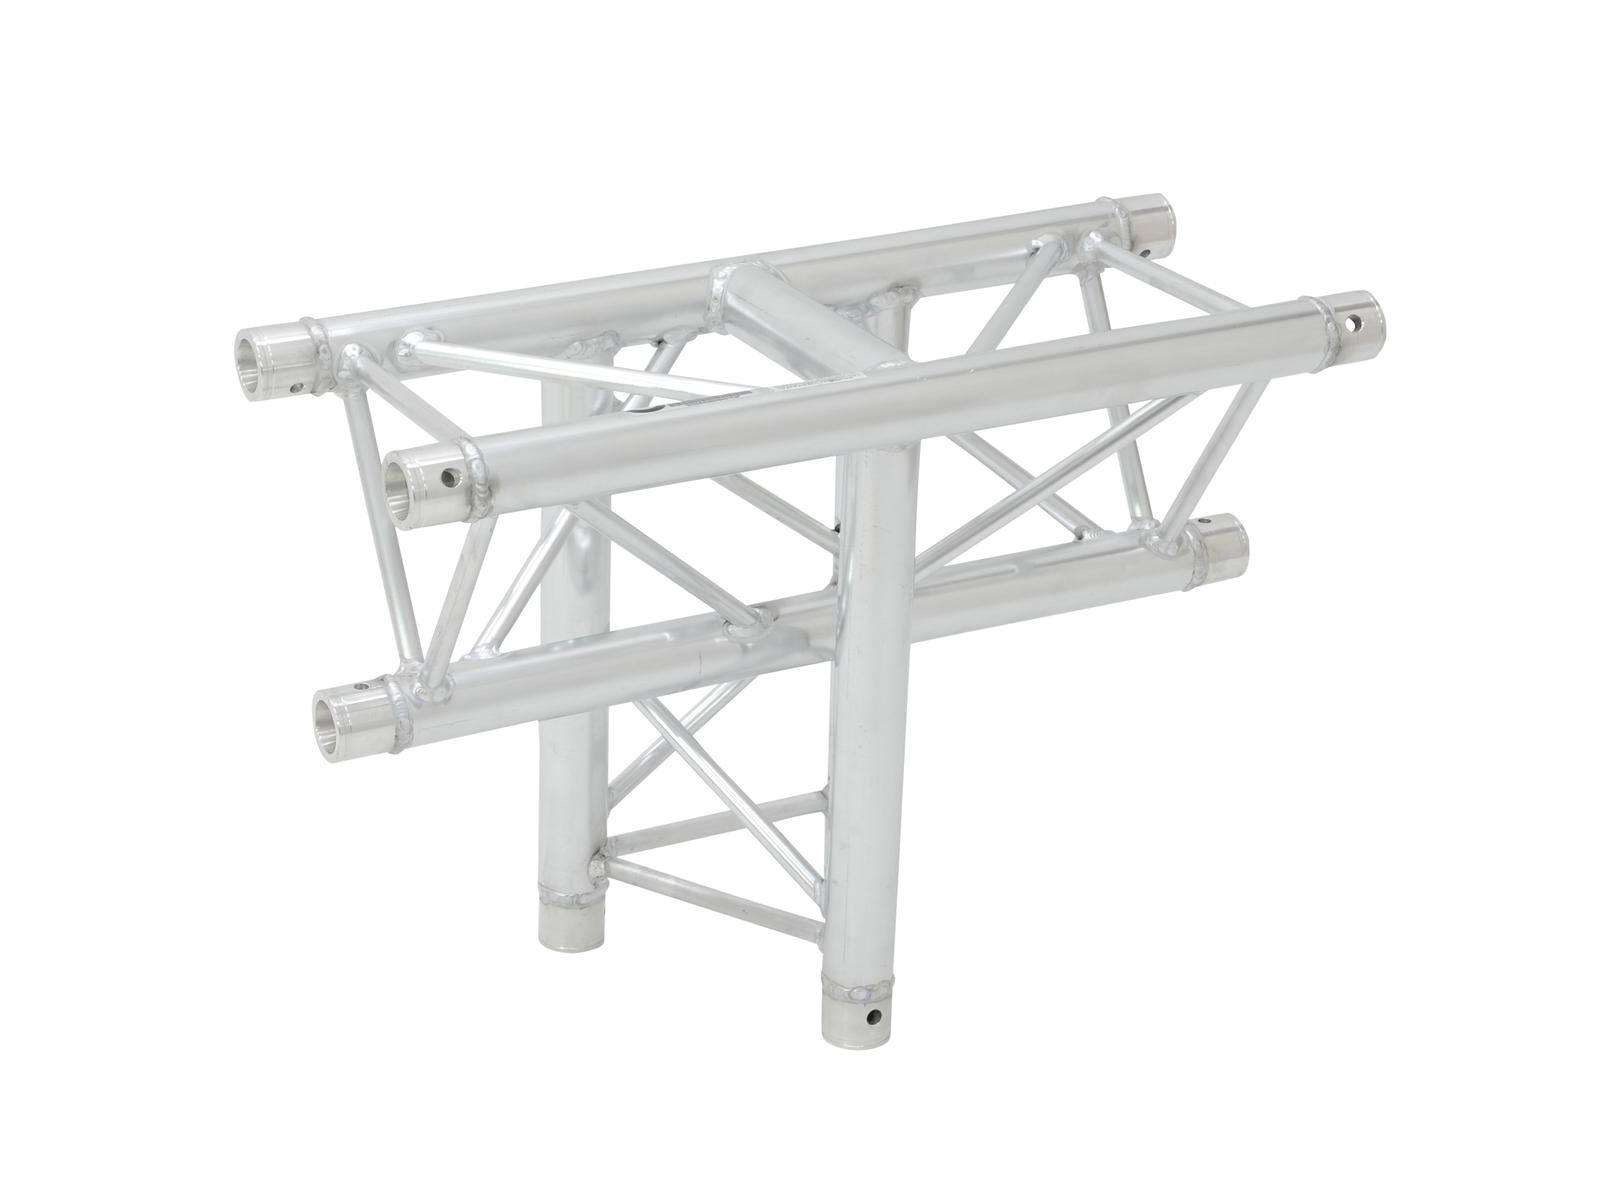 ALUTRUSS TRILOCK 6082AT-35 a 3 vie raccordo a T